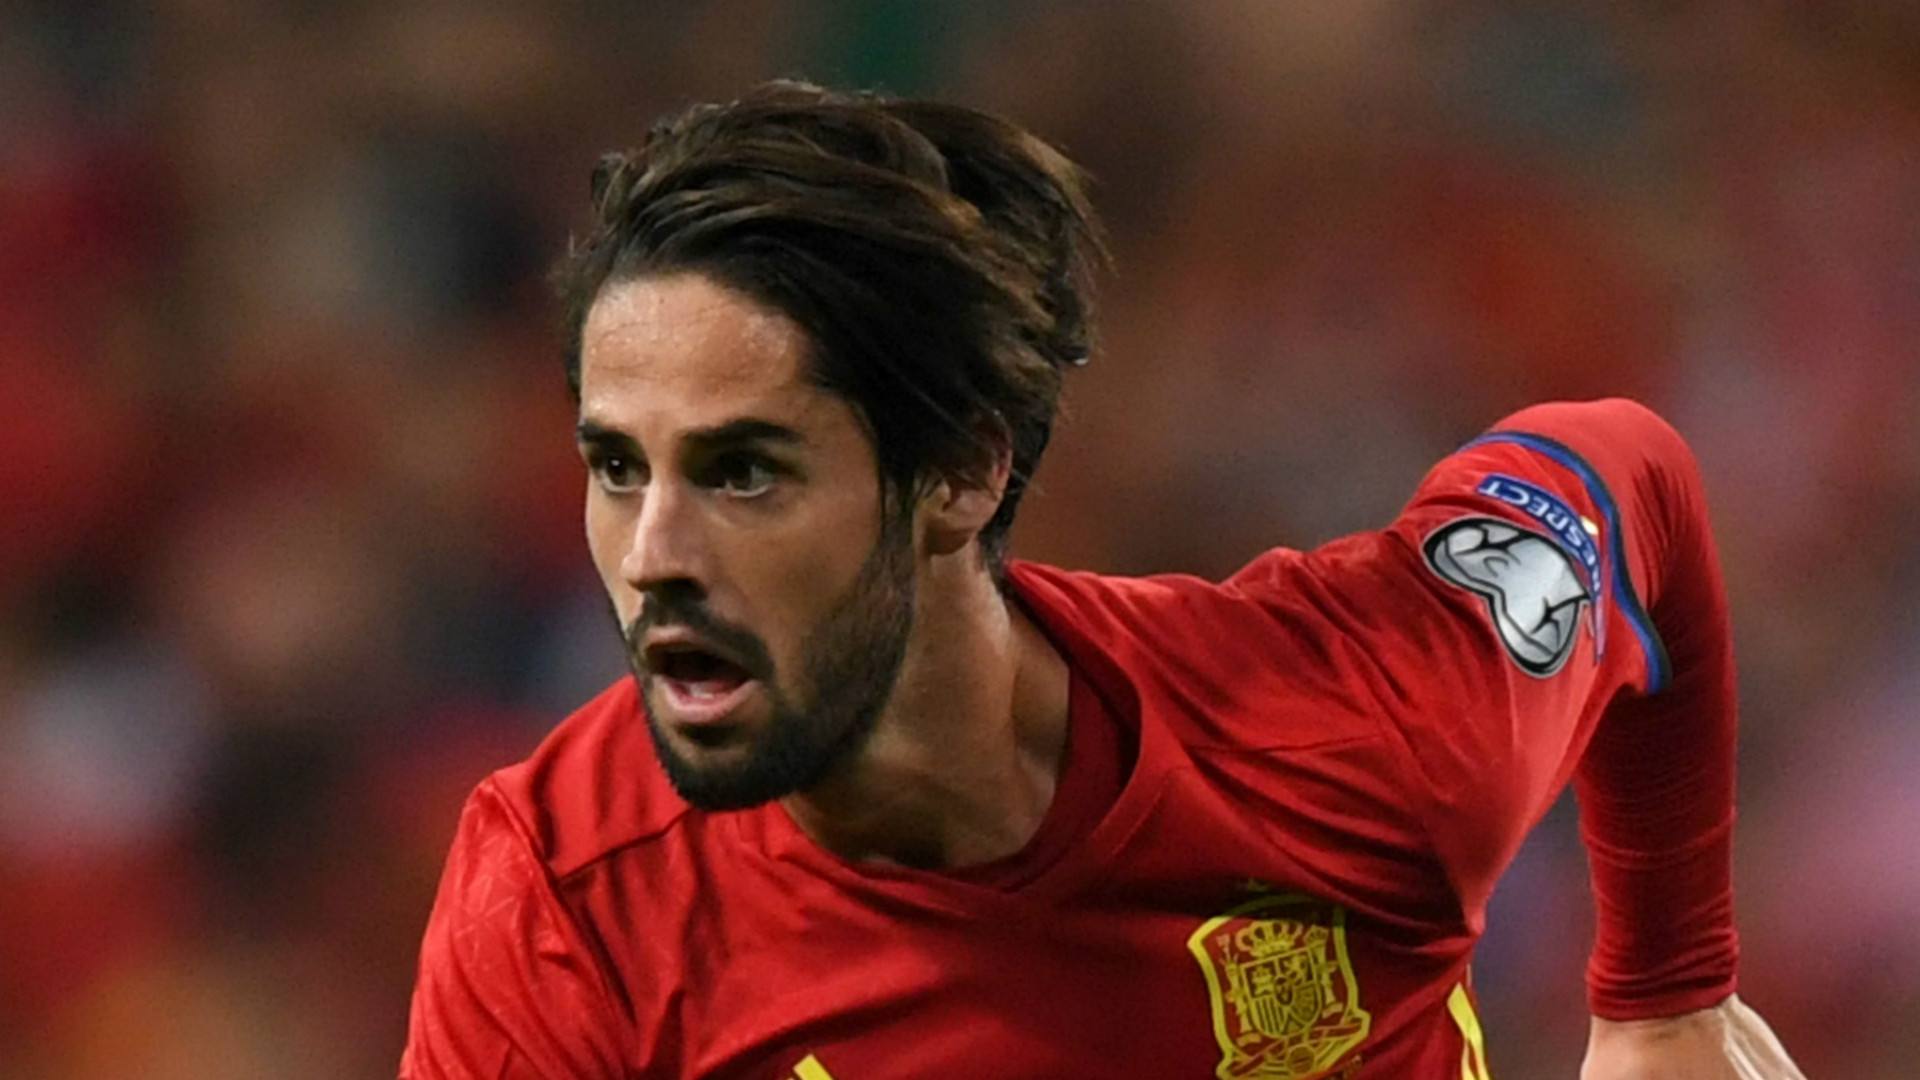 Spain Star: We Don't Know How To Handle The Pique Situation